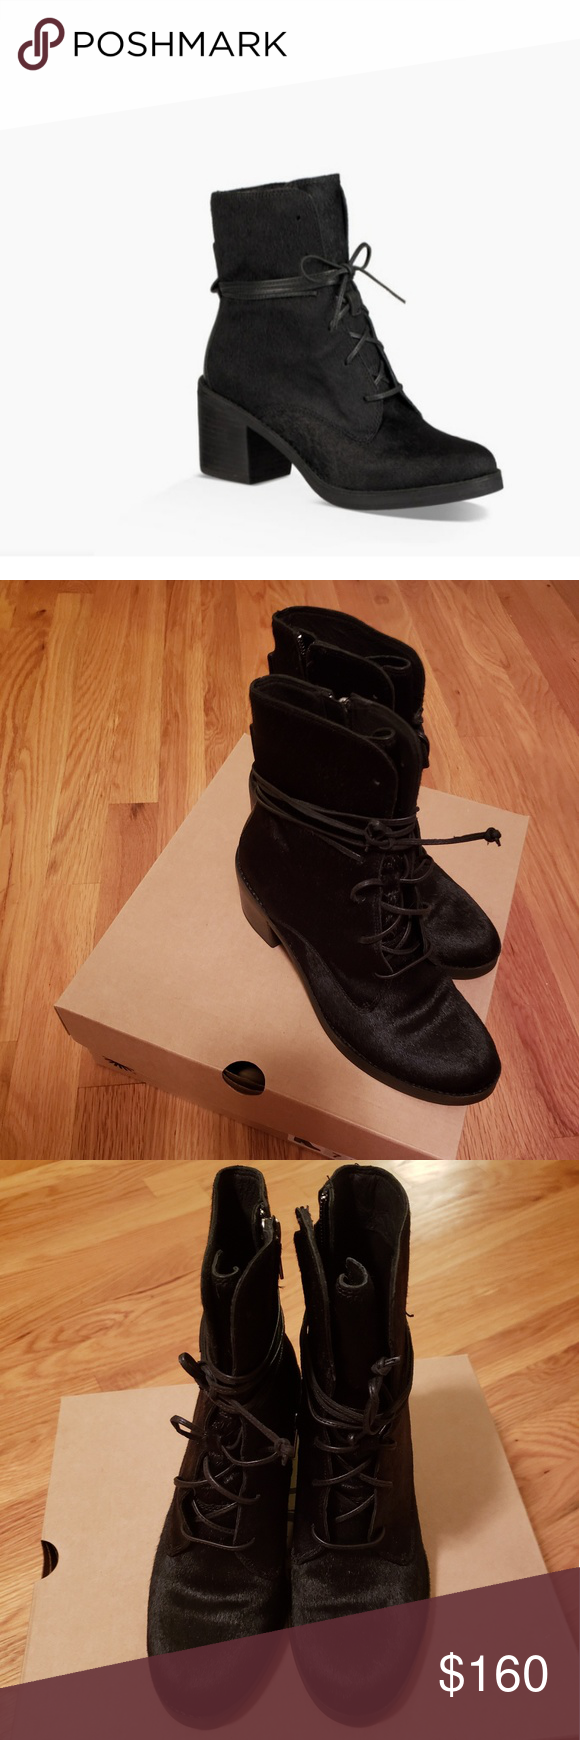 7cd9e6bd5a9 UGG Oriana Exotic Boots NWT Cow Hair boots hits above ankle leather ...